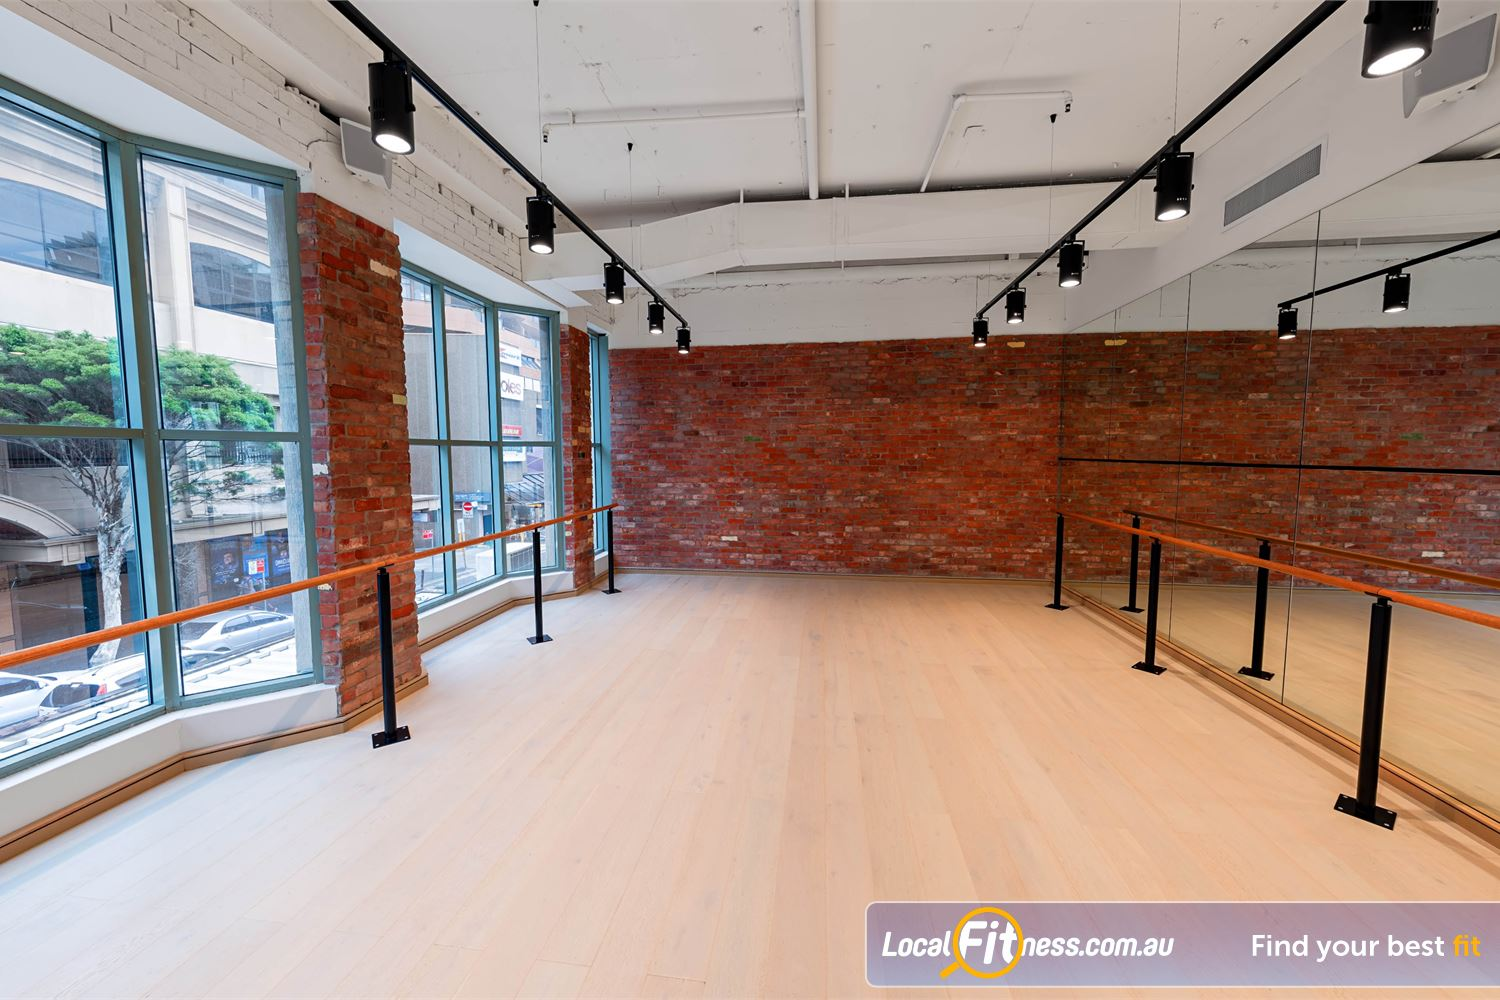 Fitness First Platinum Spring St Near Bellevue Hill Try one of the hottest classes and trends with Bondi Barre classes.